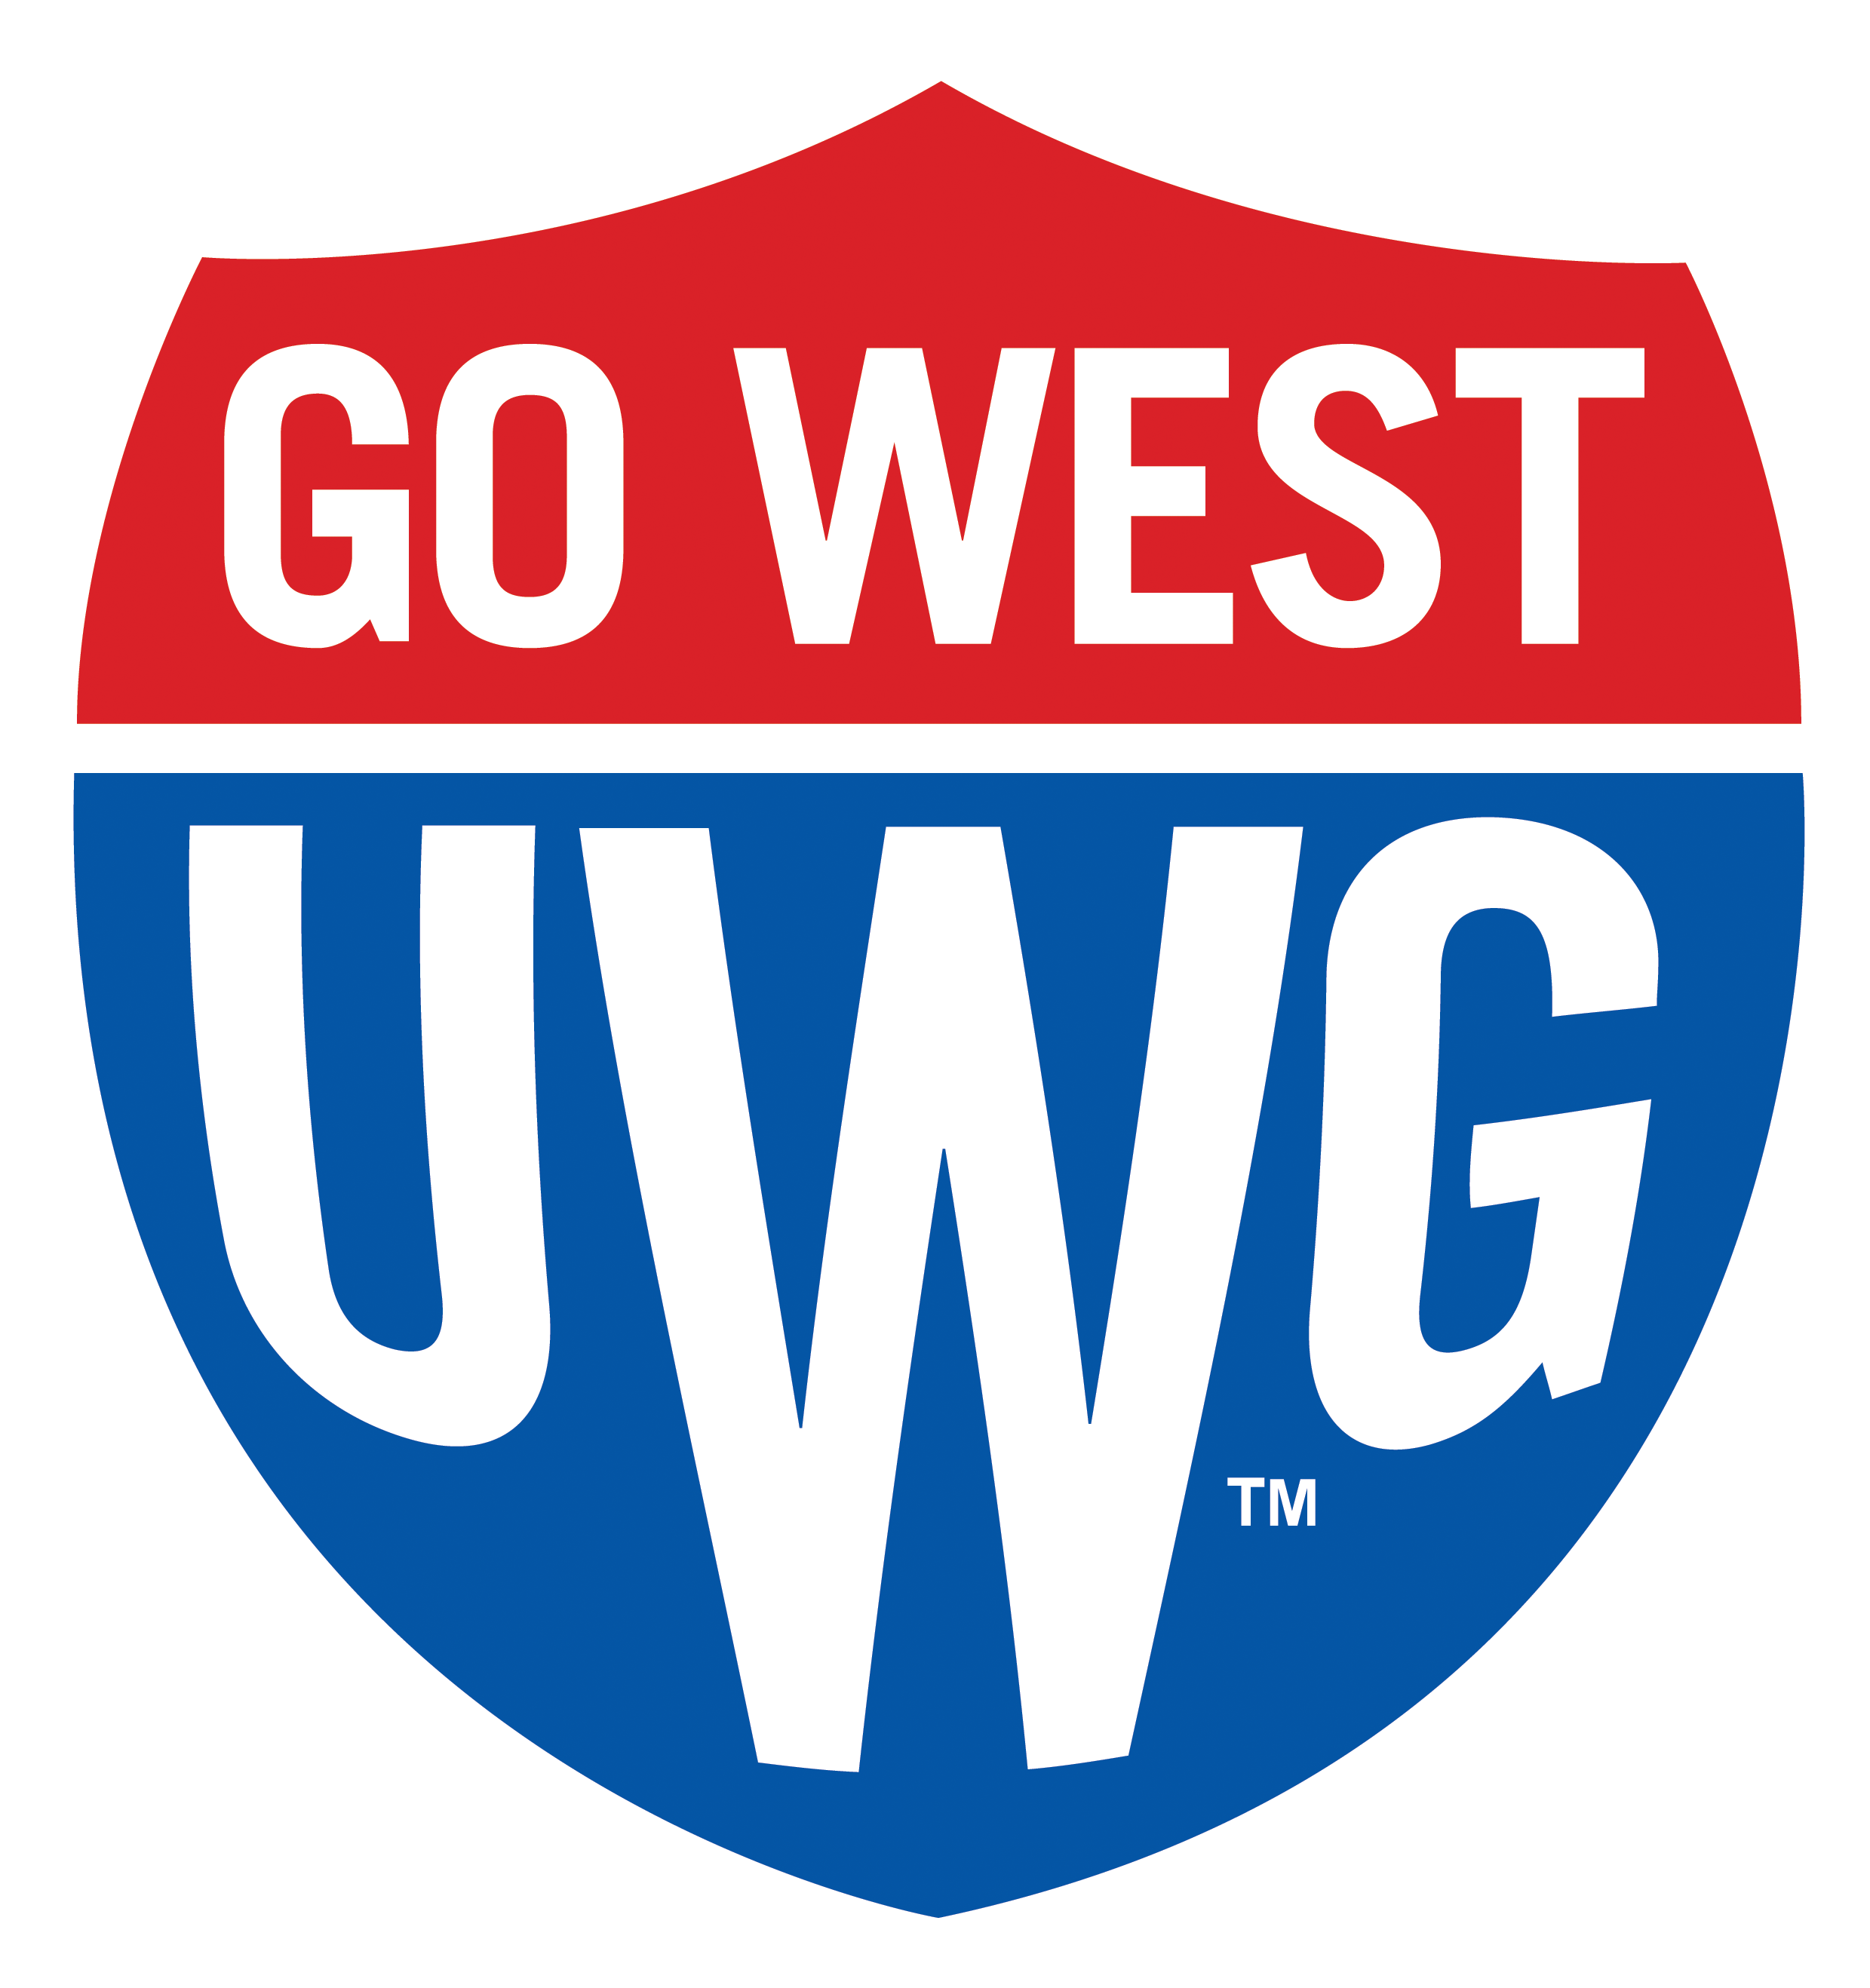 Uwg | Home Pertaining To University Of West Georgia Academic Calendar